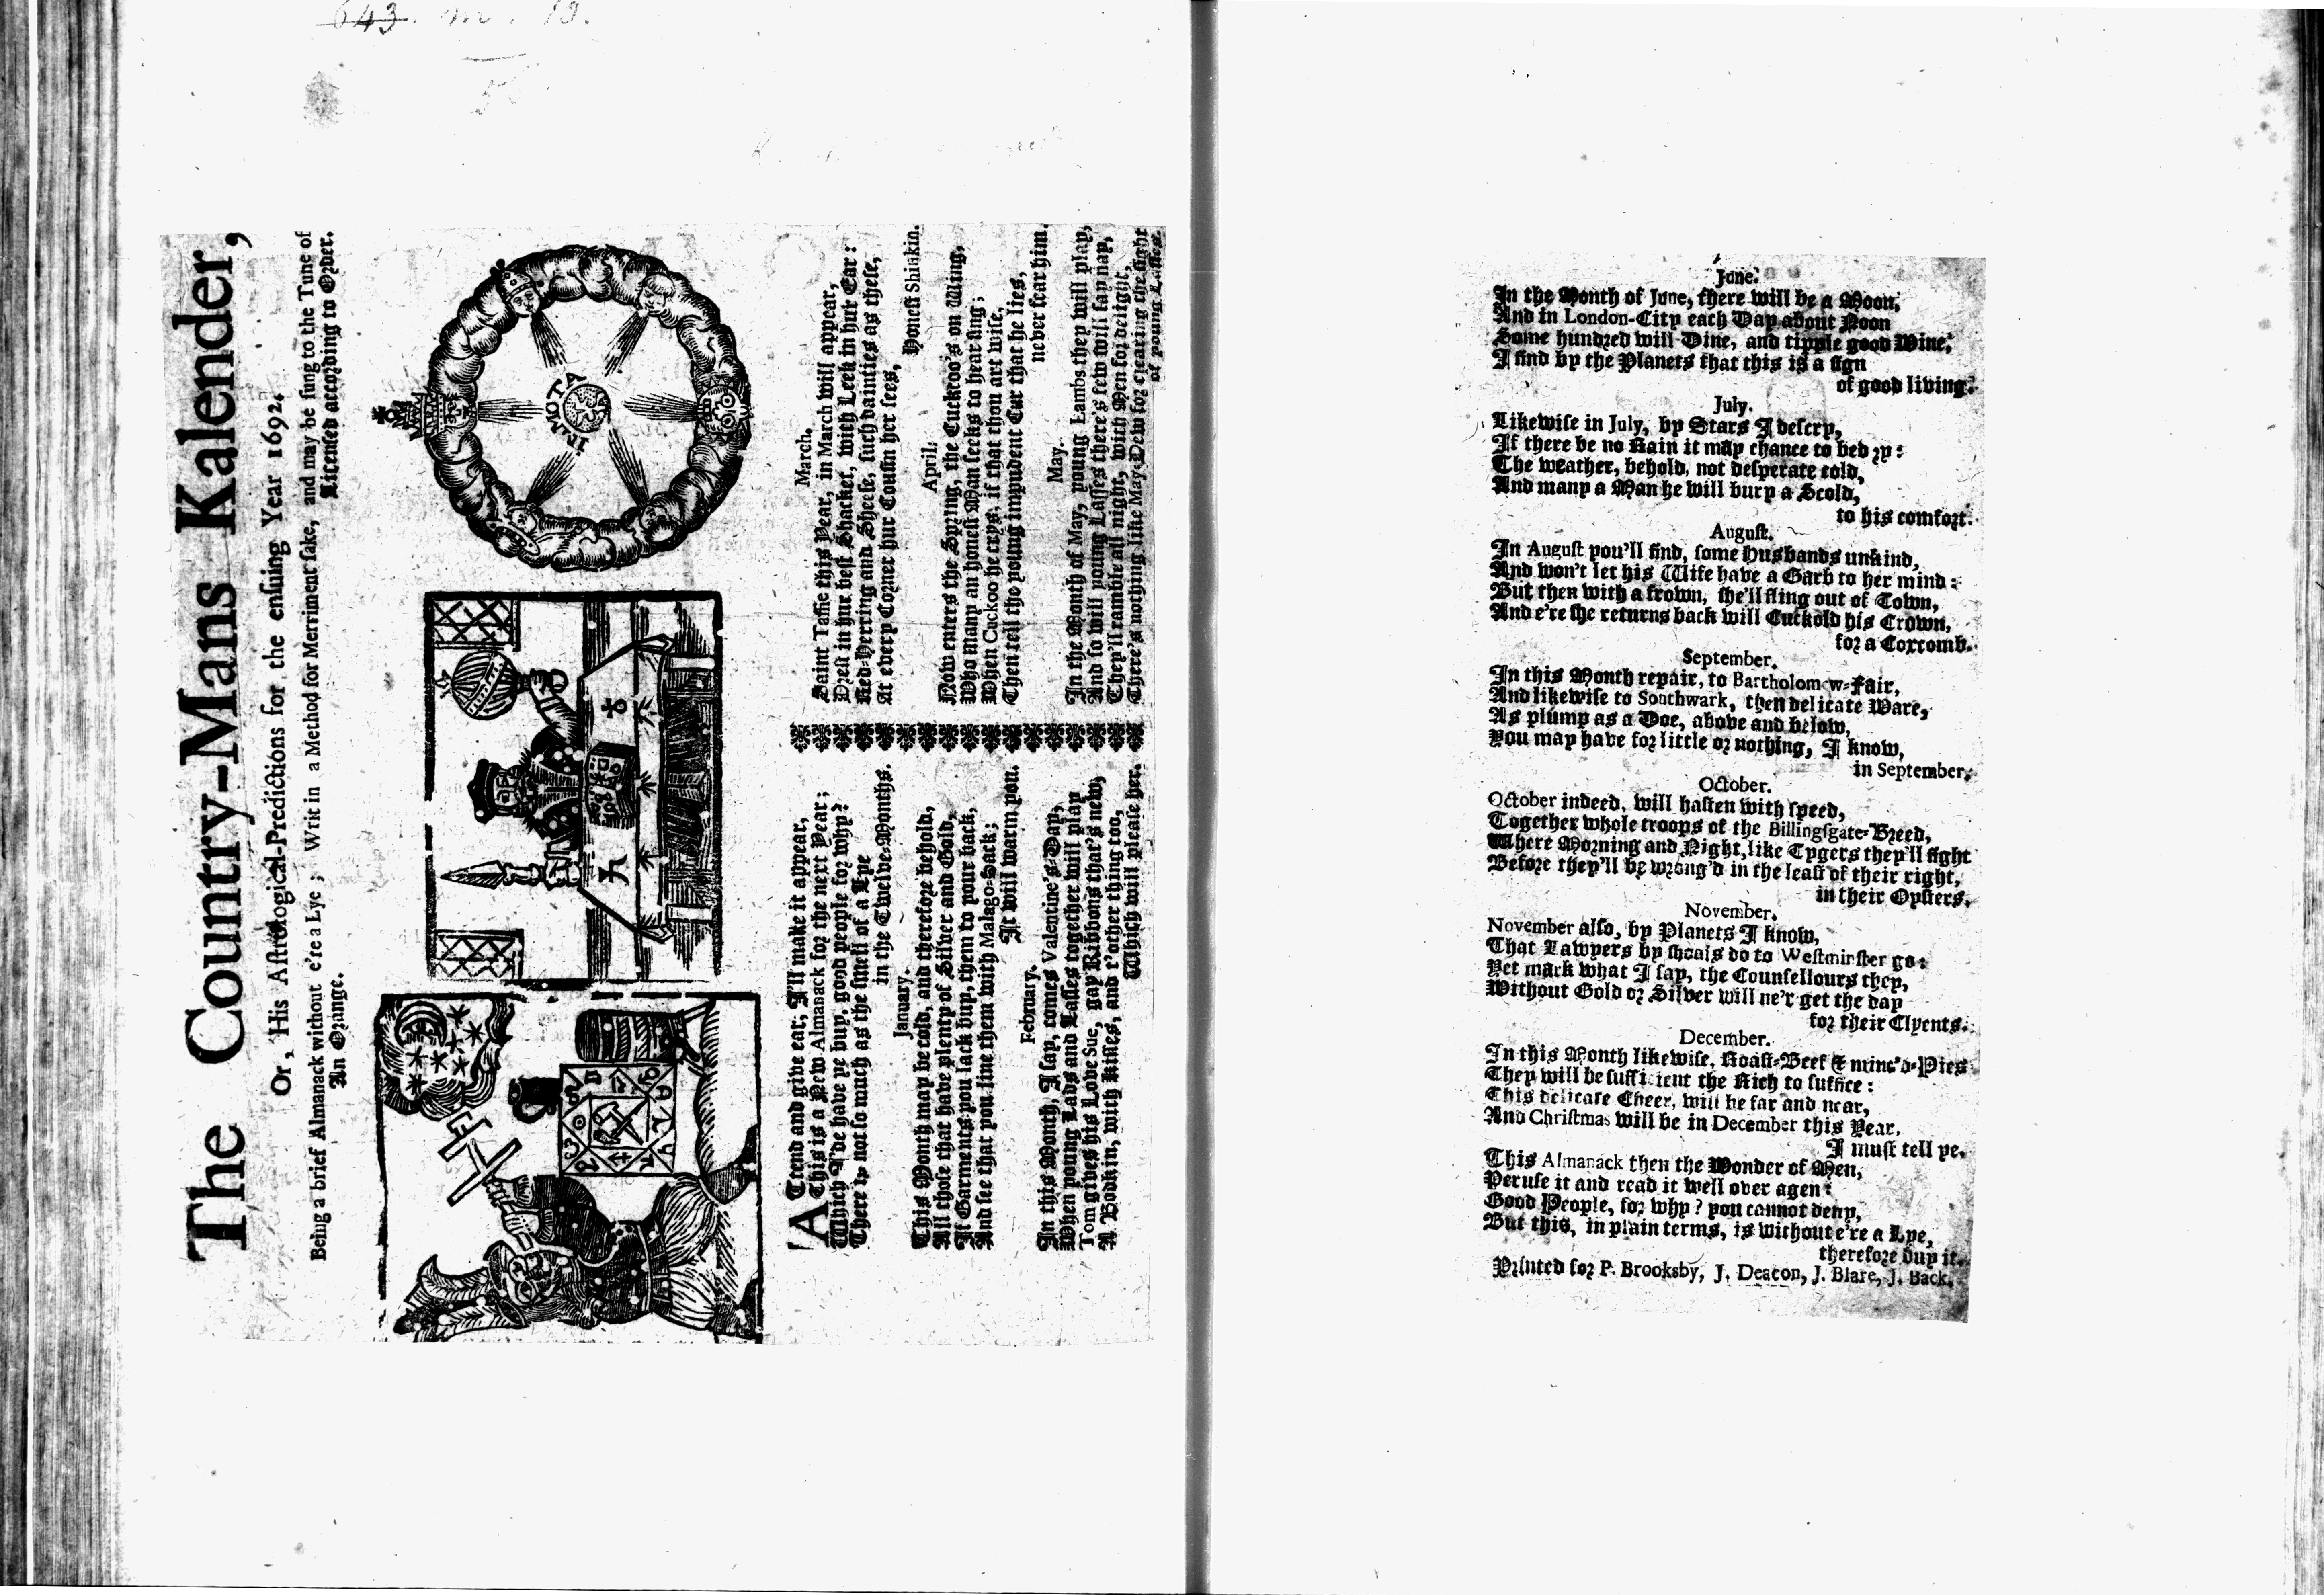 characteristics of seventeenth century england essay Download citation on researchgate | a woodcut and its wanderings in seventeenth-century england | this essay traces the career of a distinctive woodcut picture that appears on dozens of seventeenth-century ballad broadsheets.